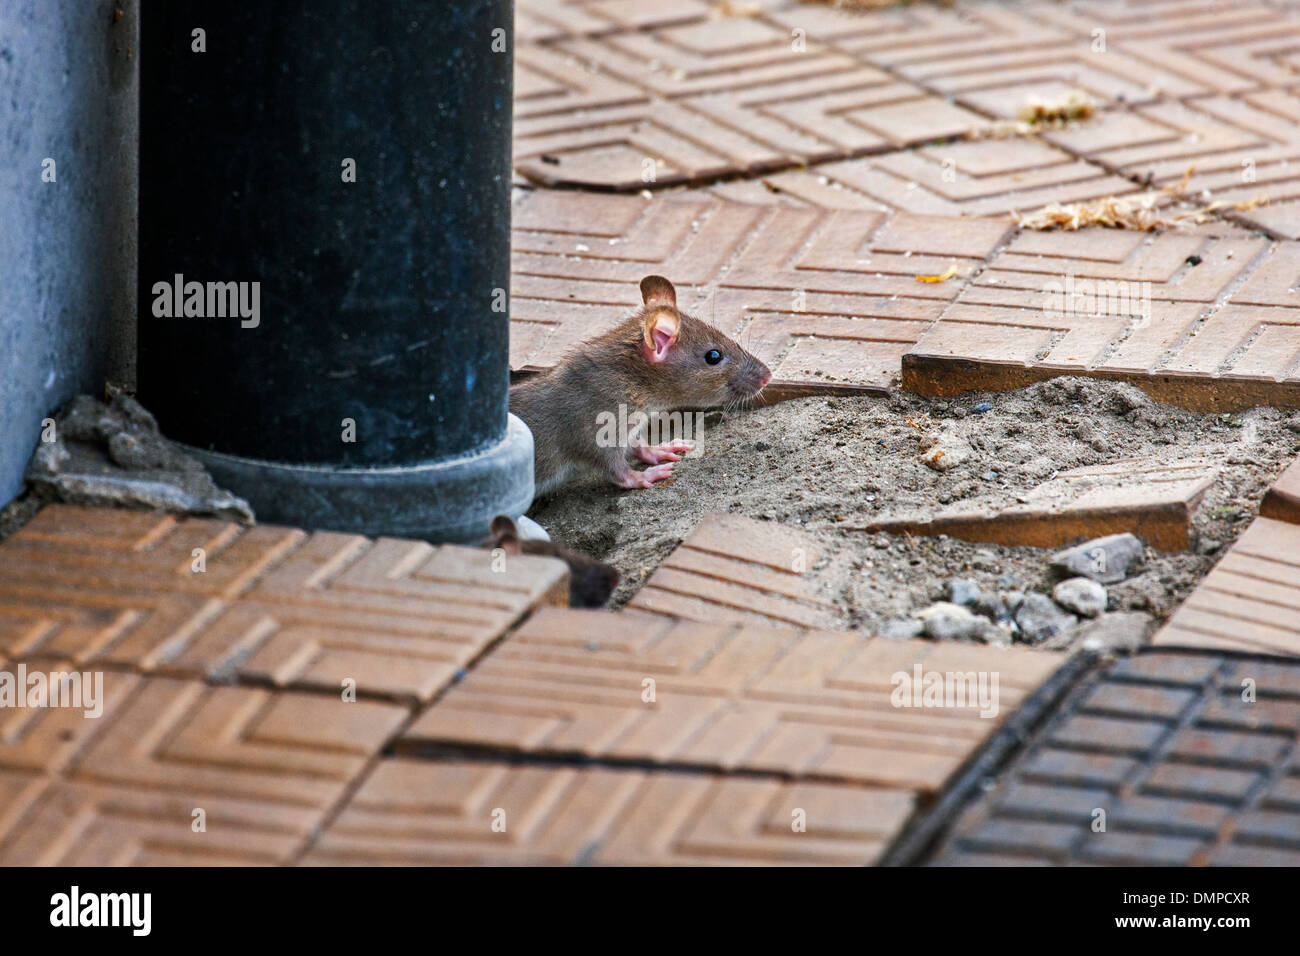 Juvenile brown rat / Common rat (Rattus norvegicus) emerging from drainpipe on pavement in city street - Stock Image